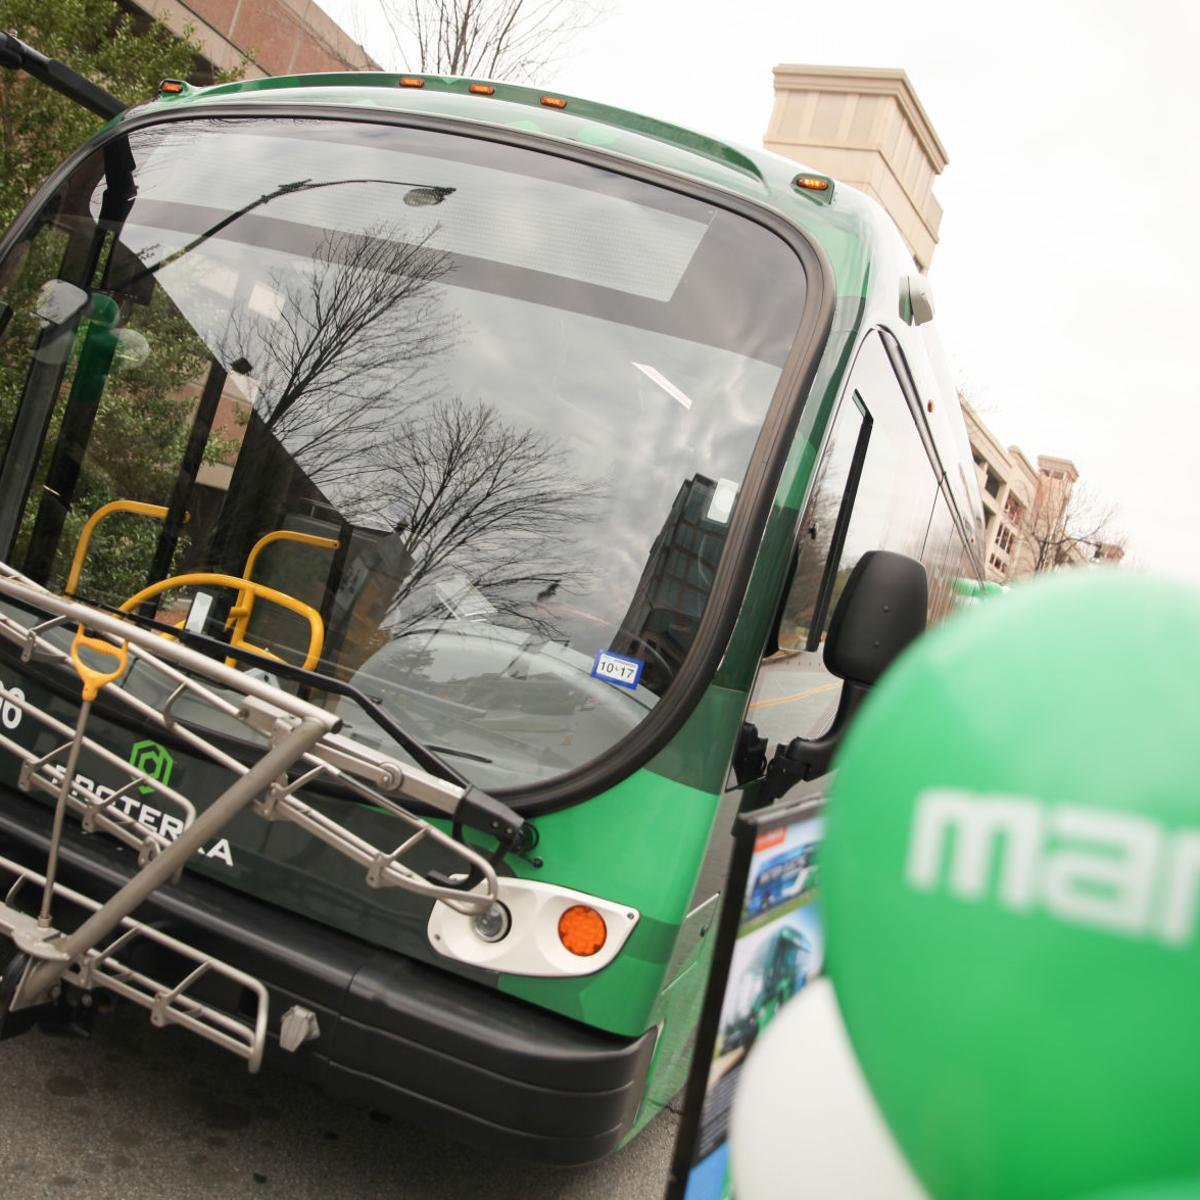 MARTA bus upgrades, expanded service coming to DeKalb